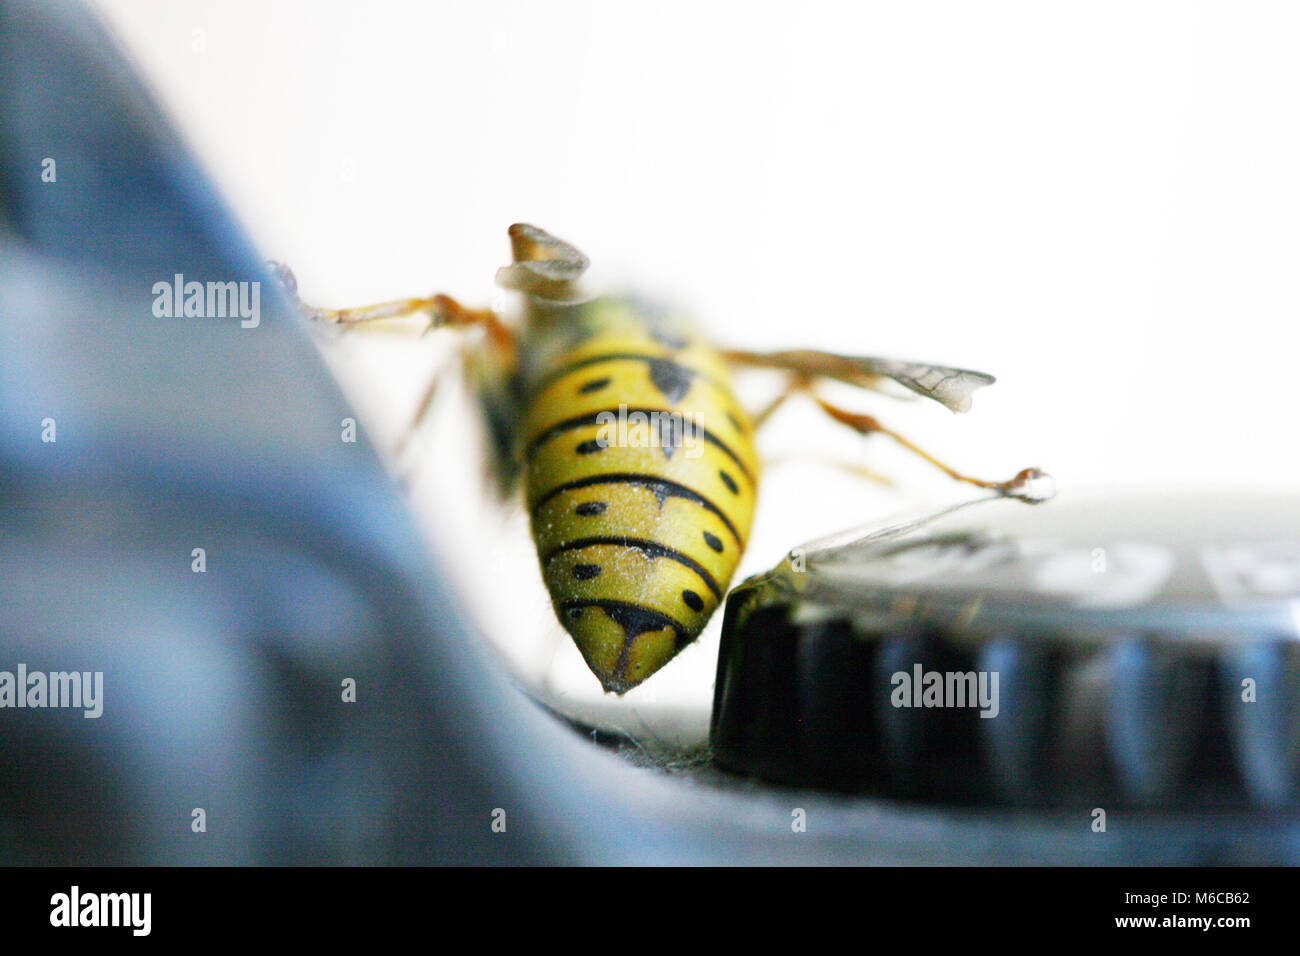 Picture of a Wasp on a digital camera controls - Stock Image